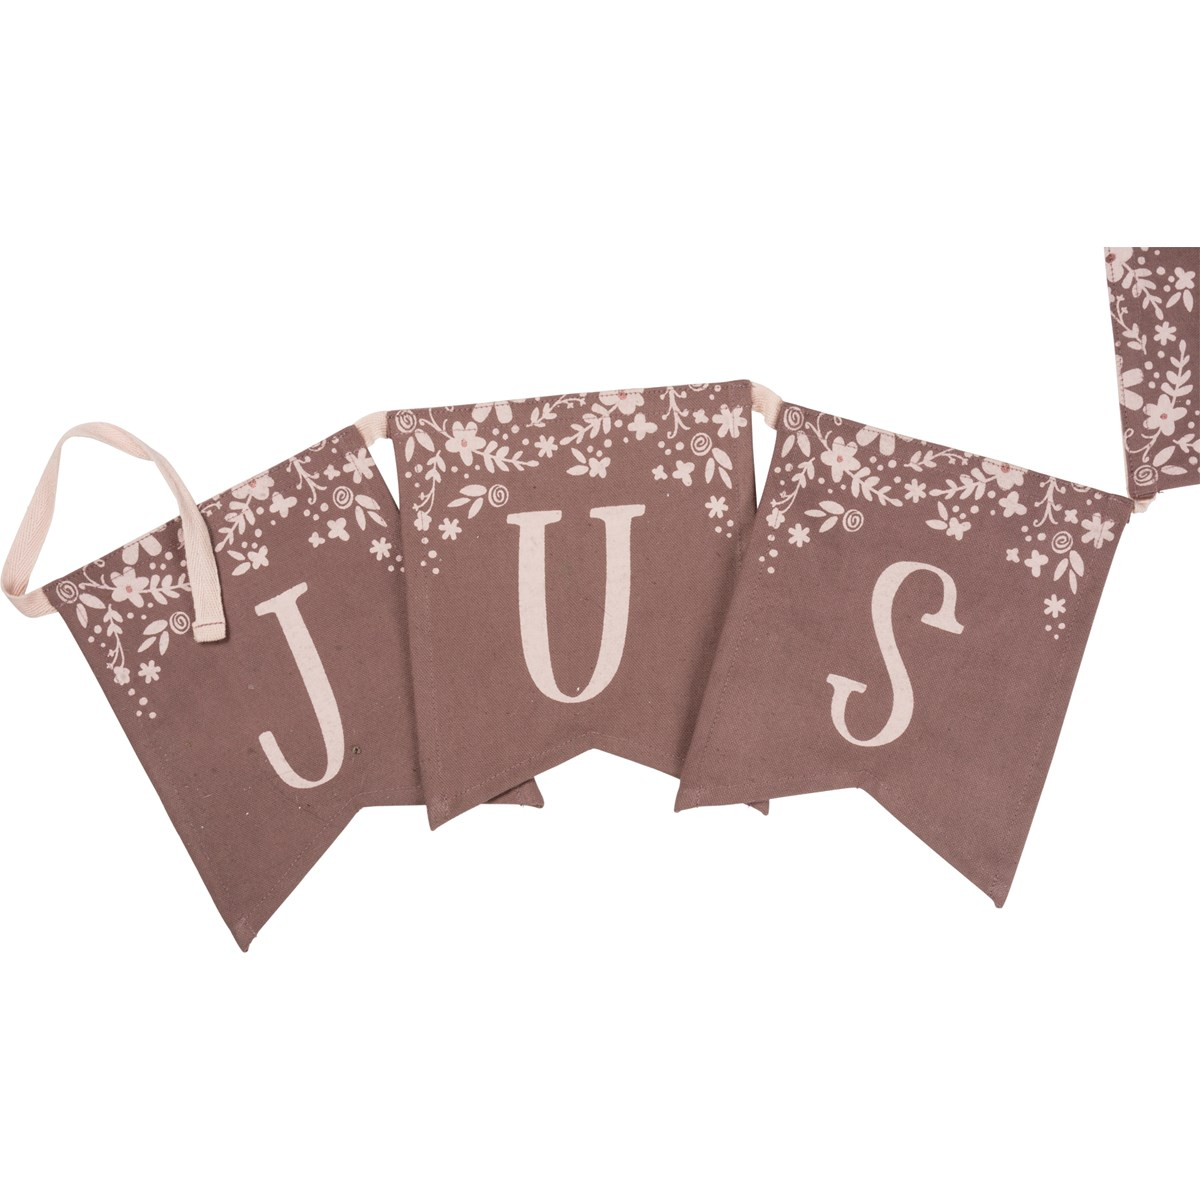 "Pennant Banner - Just Married - 99"" x 8"" - Cotton"